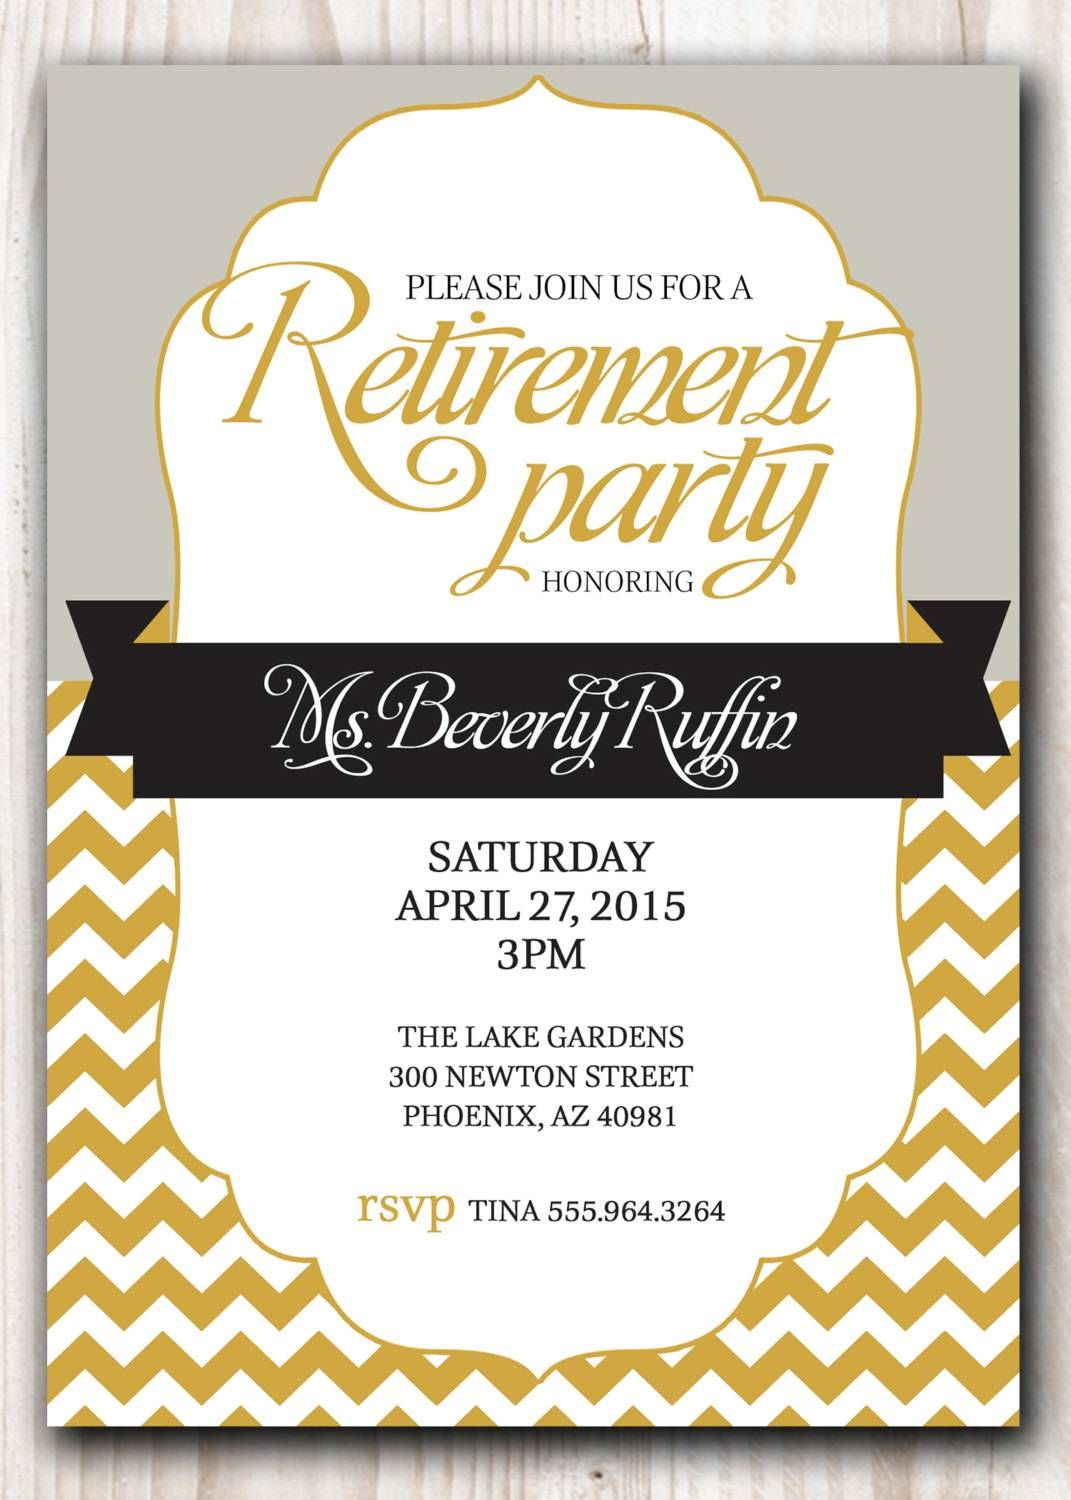 Retirement party invitation template microsoft retirment party retirement party invitation template microsoft stopboris